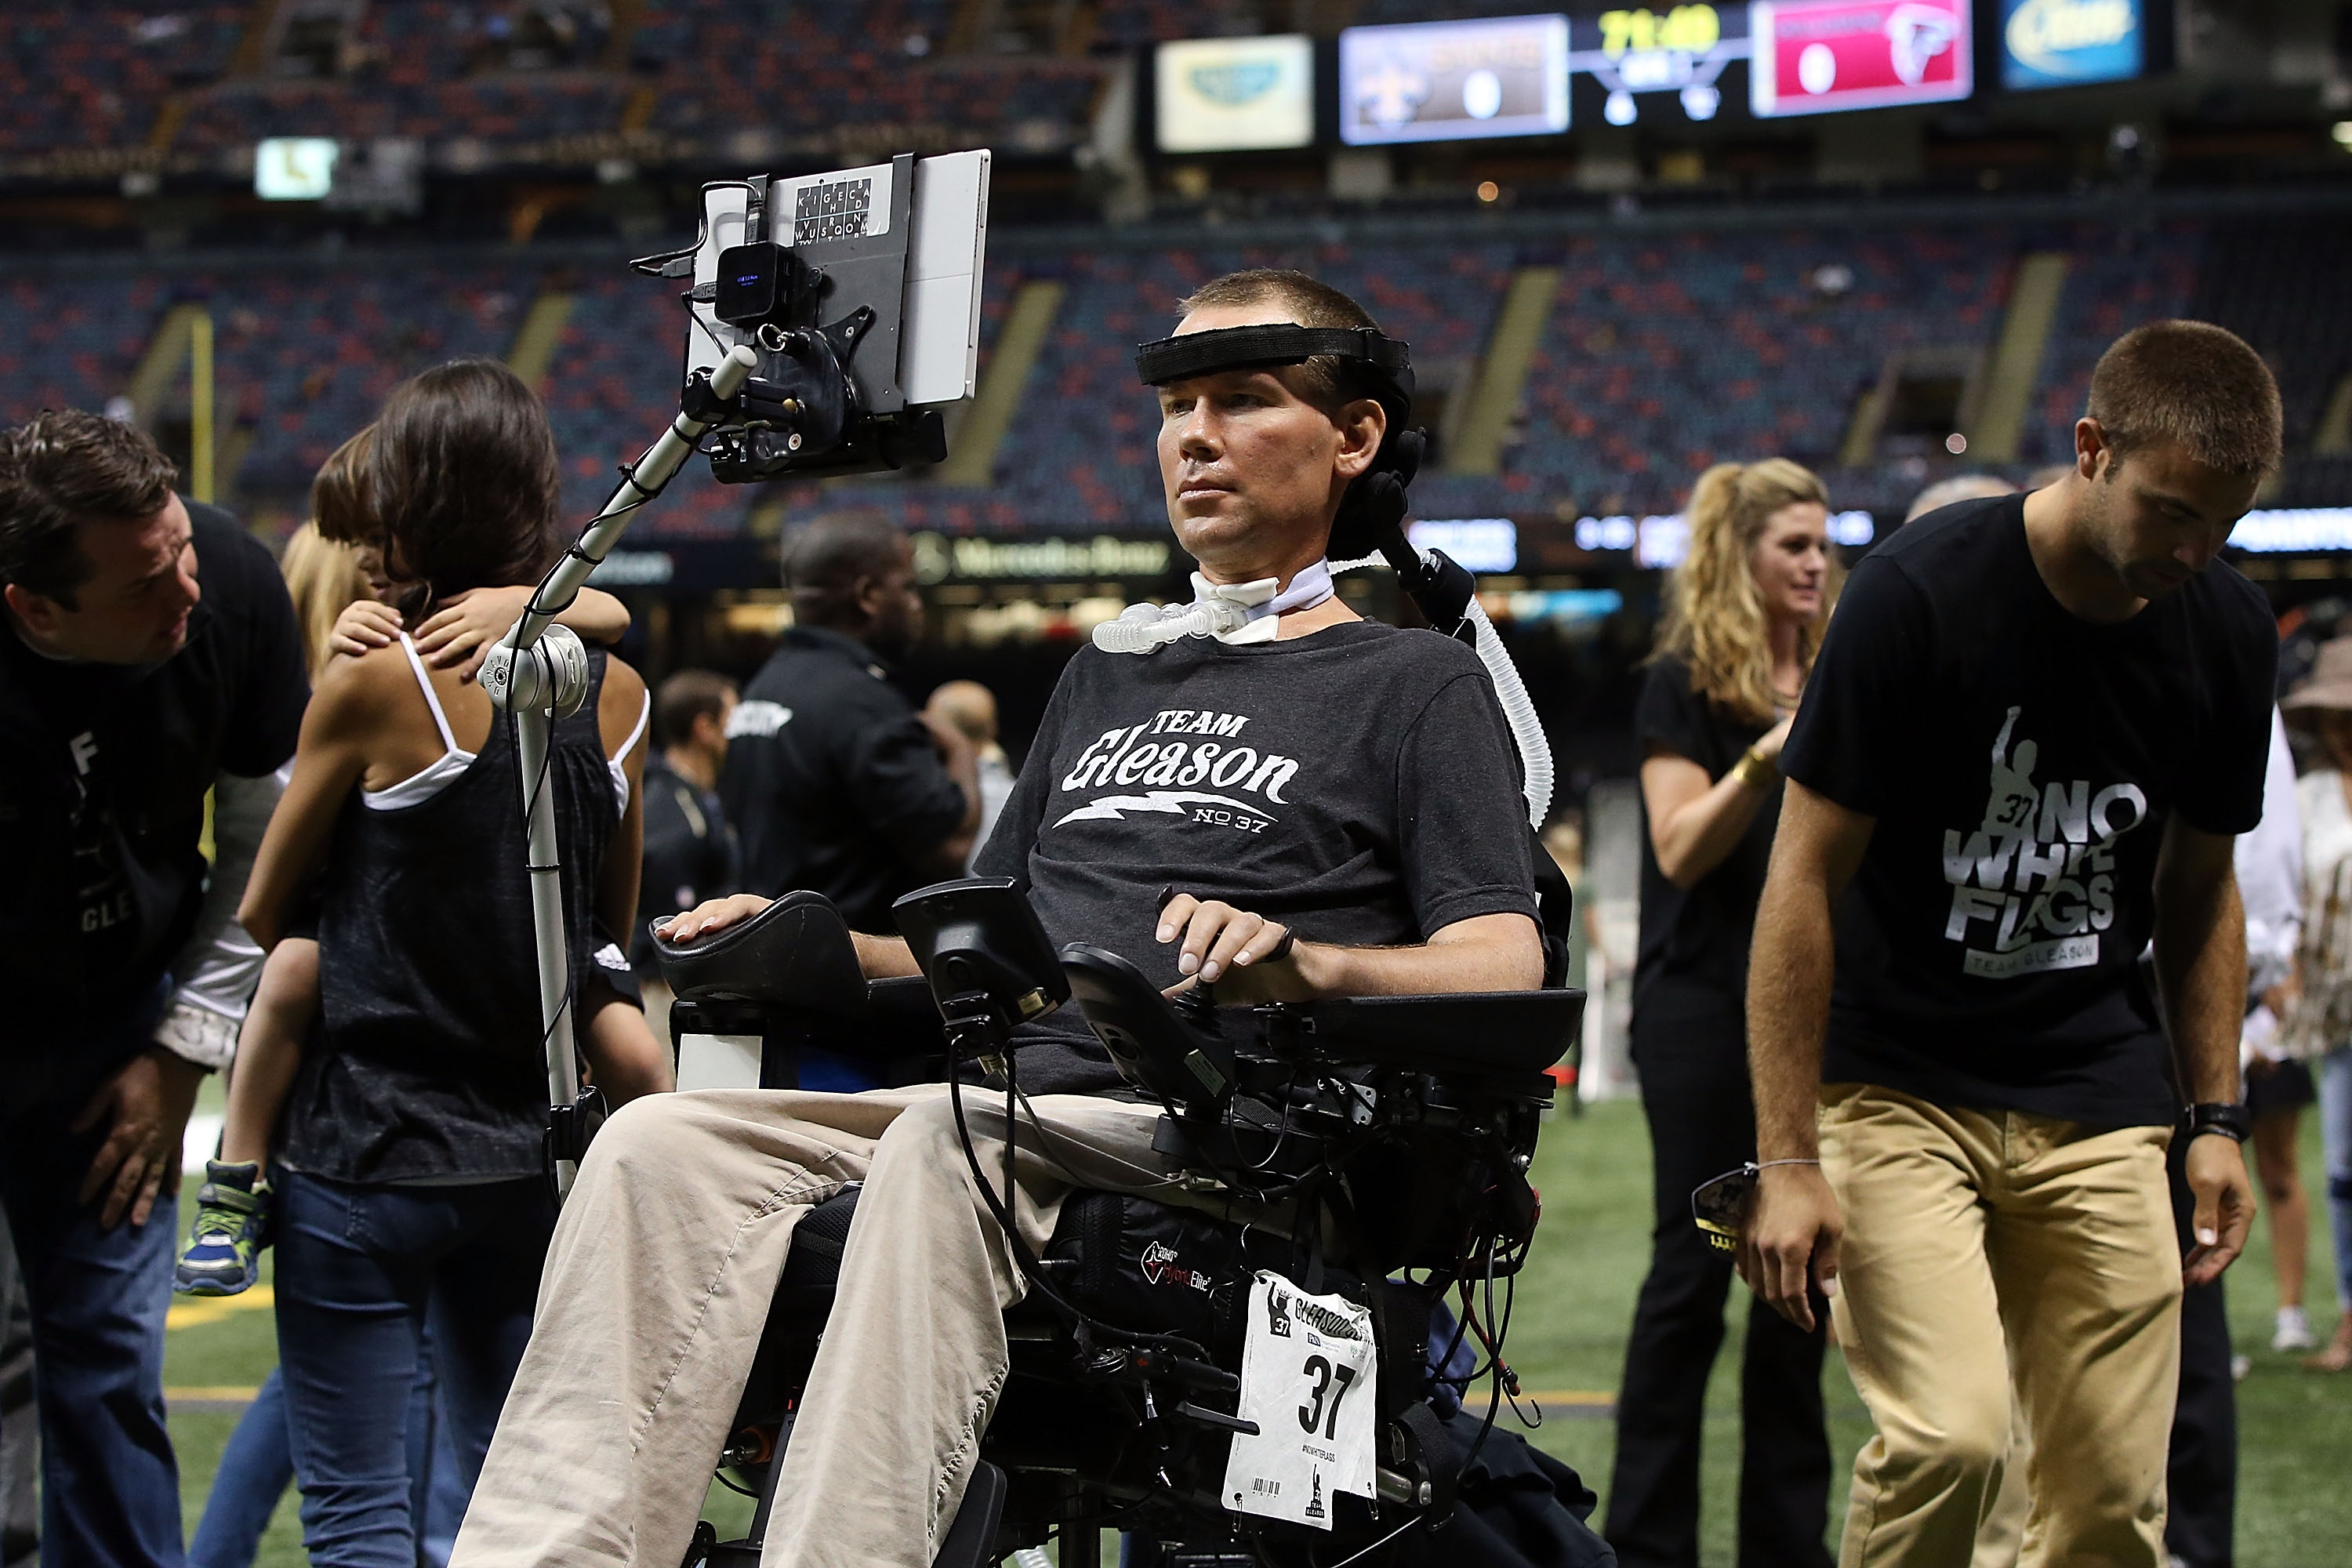 NEW ORLEANS, LA - OCTOBER 15:  Former New Orleans Saints player Steve Gleason watches action prior to a game between the New Orleans Saints and the Atlanta Falconsat the Mercedes-Benz Superdome on October 15, 2015 in New Orleans, Louisiana.  (Photo by Sean Gardner/Getty Images)